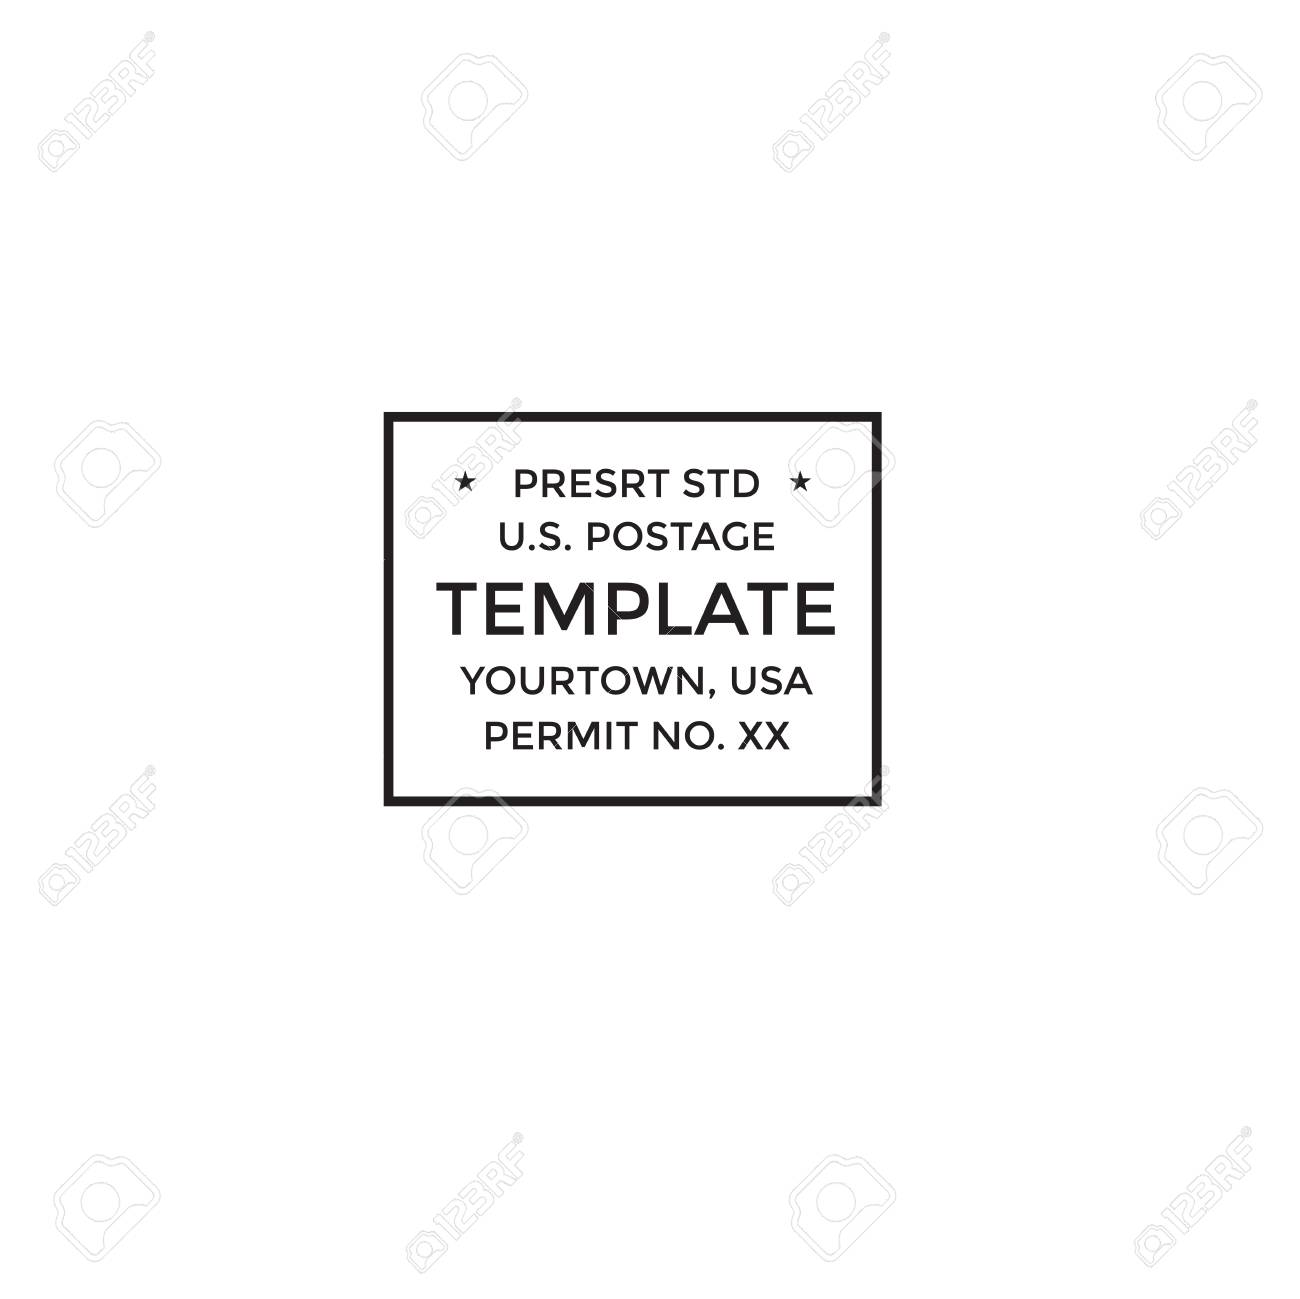 Postal cancellation First Class mail w Postage Paid mark Stock Vector - 93197671